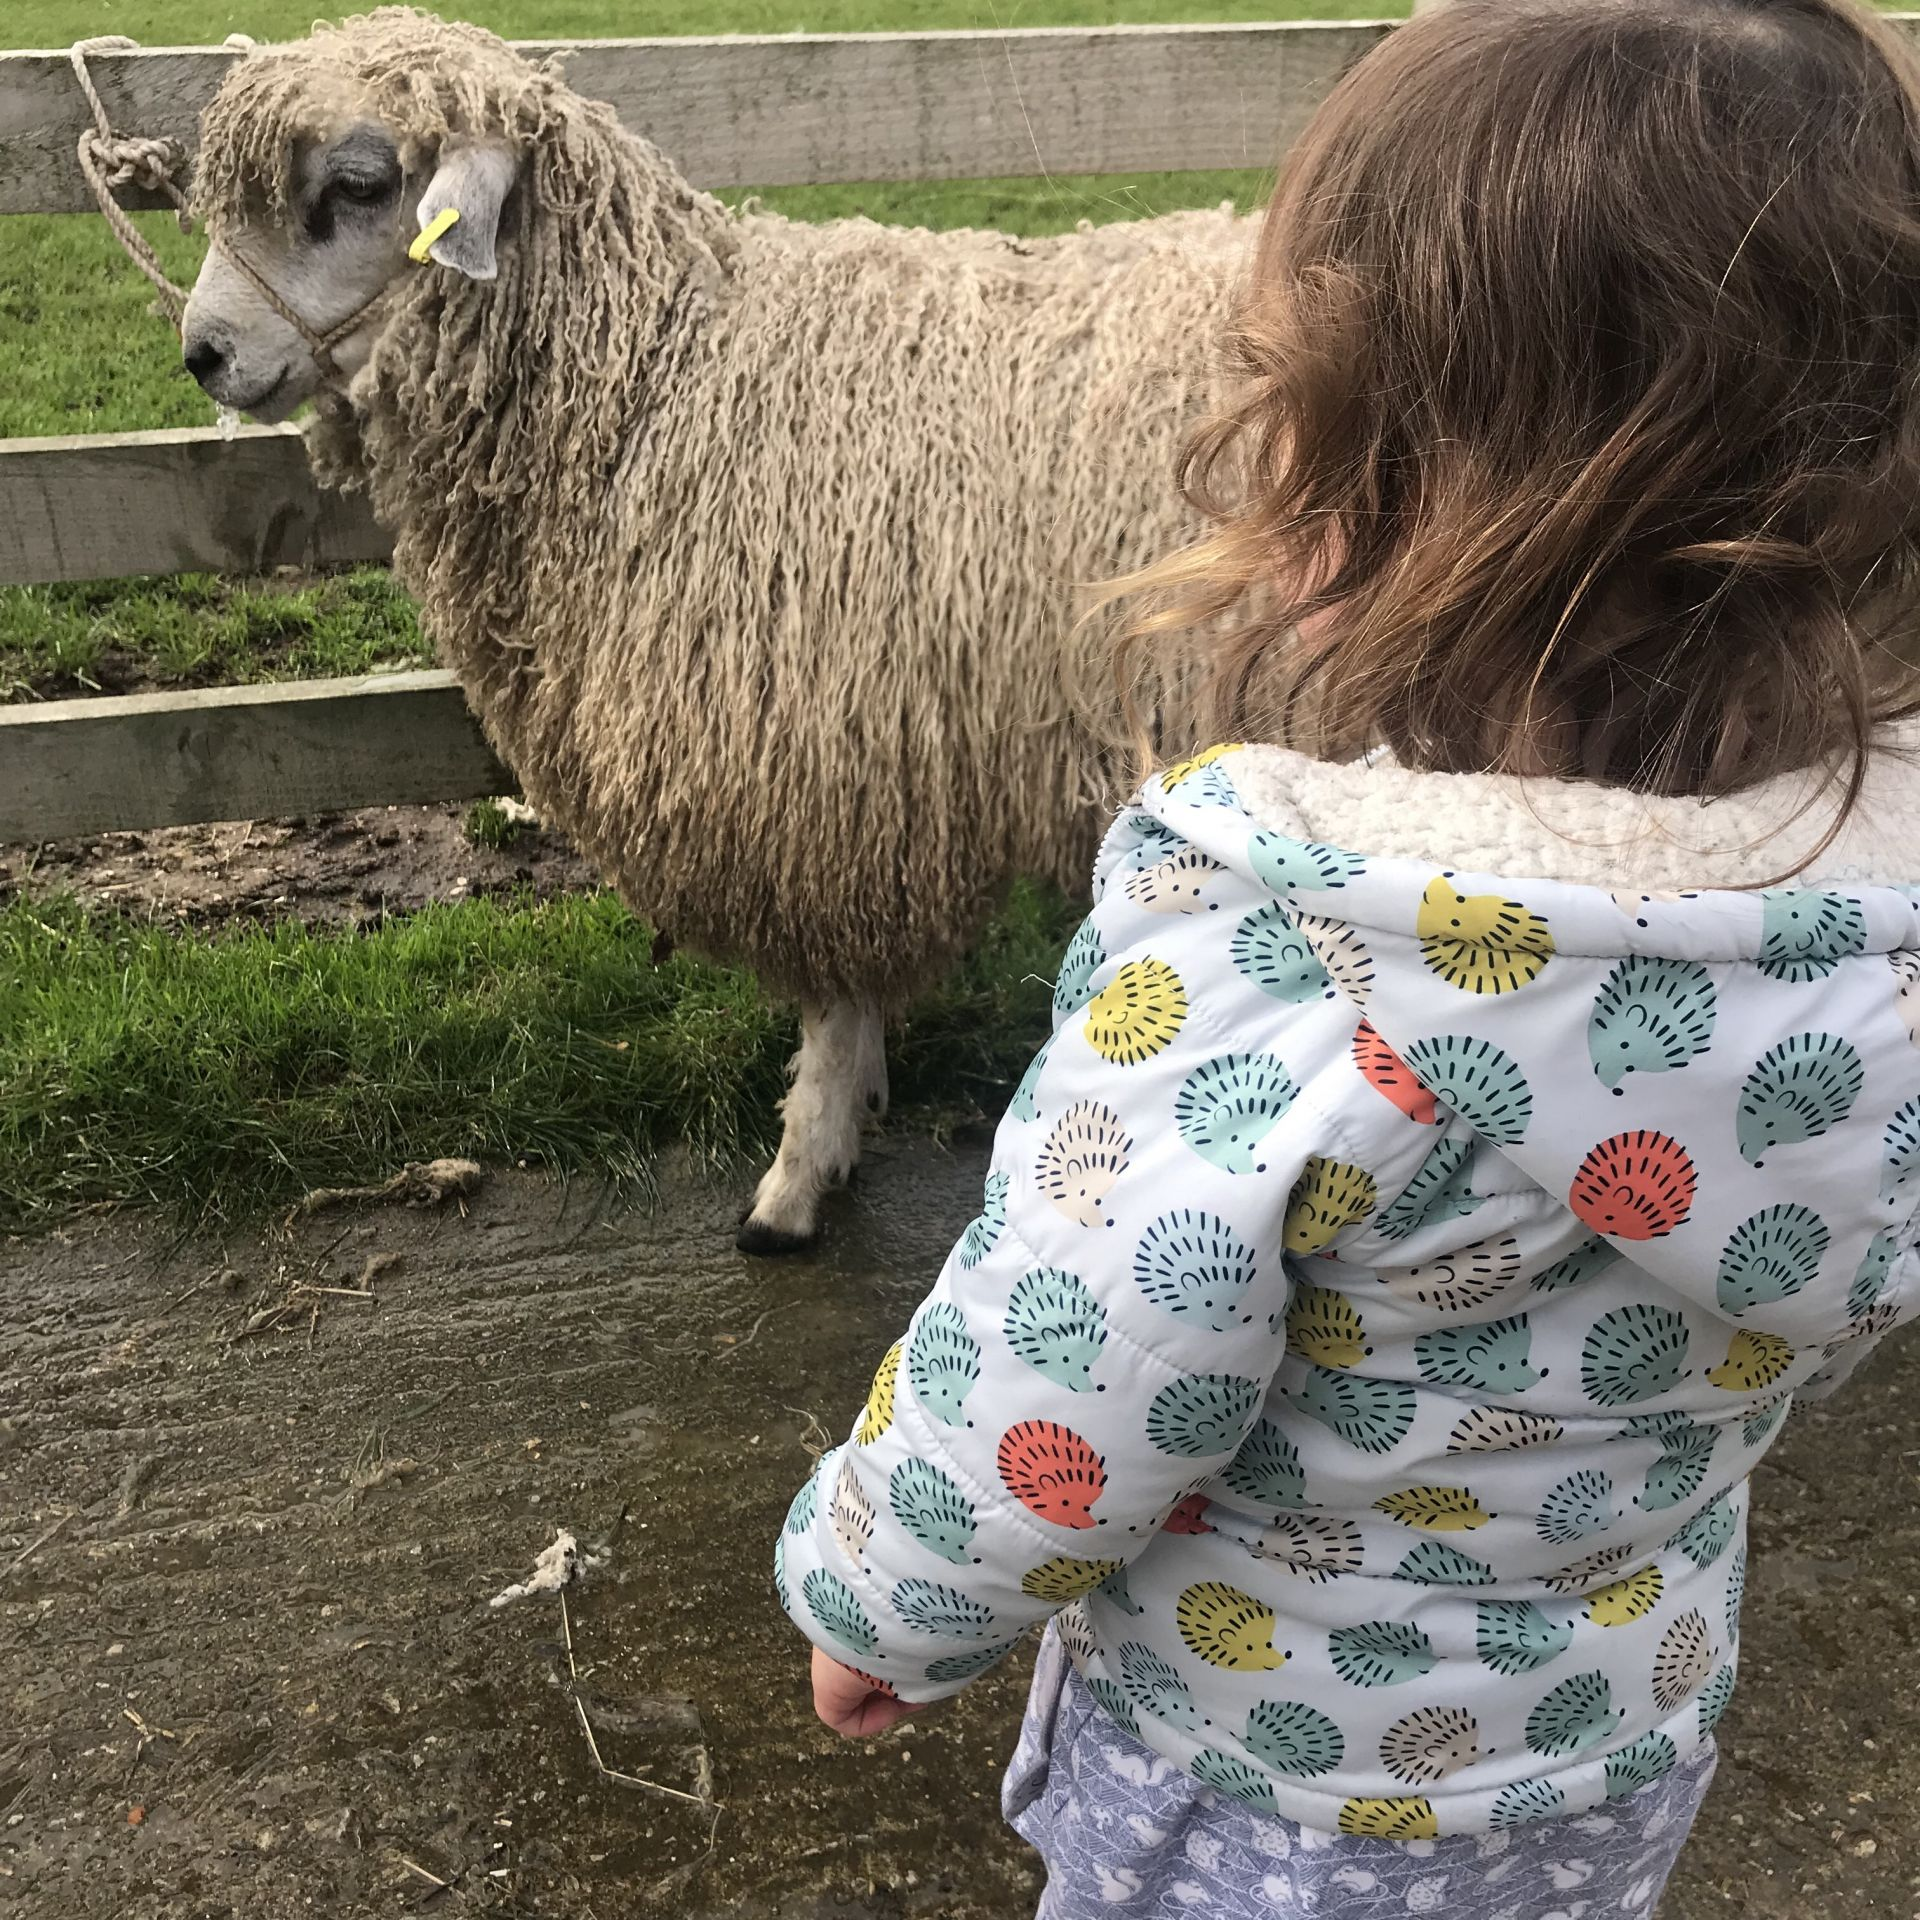 Little girl looking at a sheep